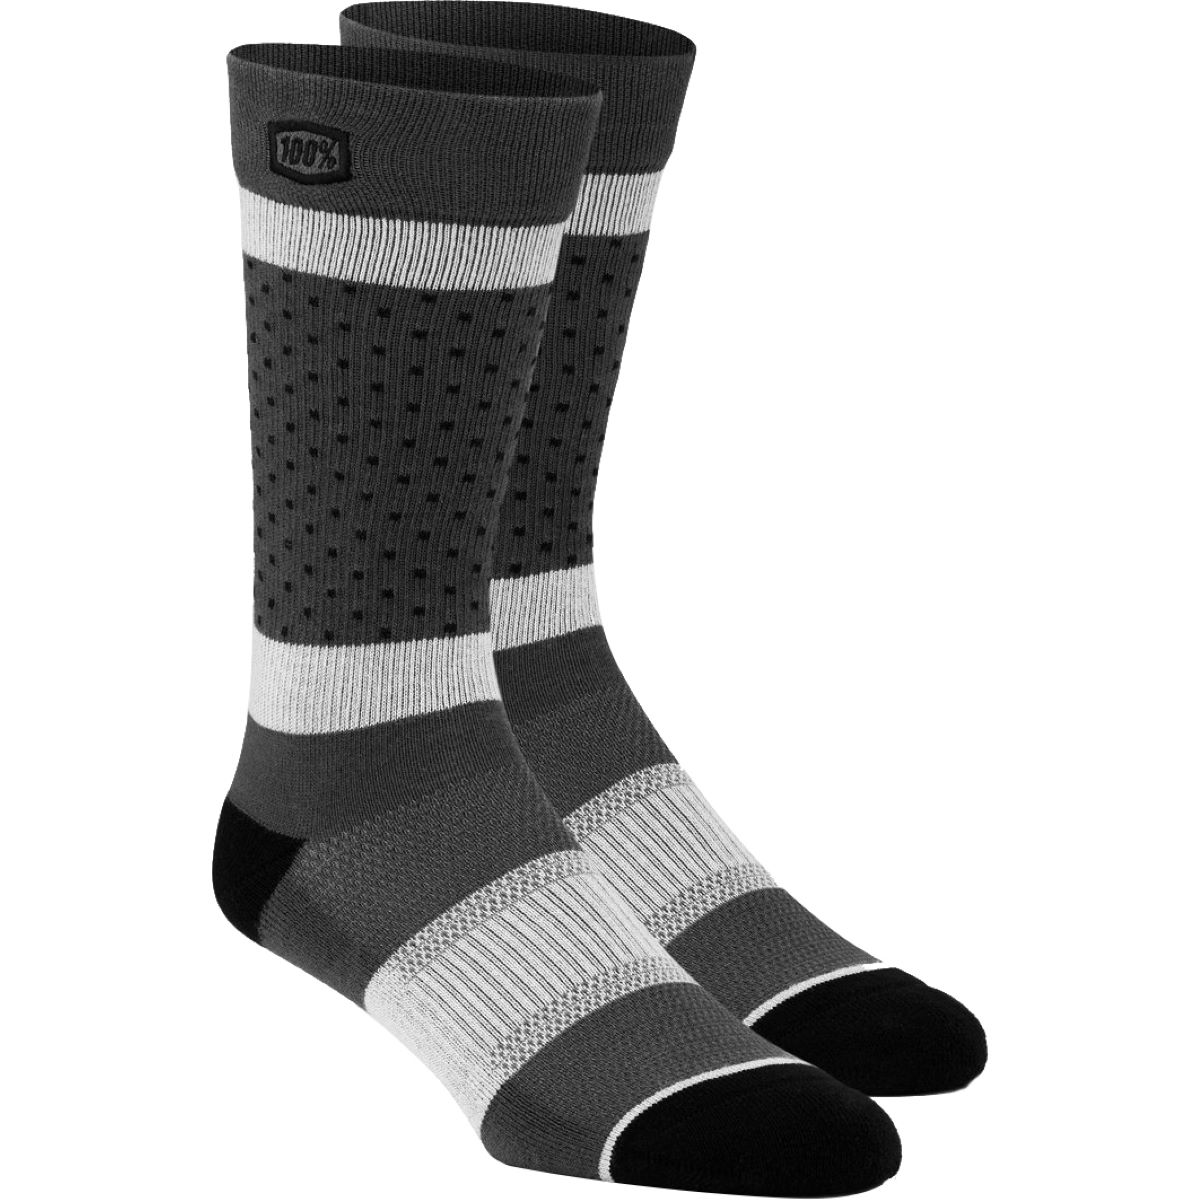 100% Opposition Casual Socks - S/m Grey  Socks